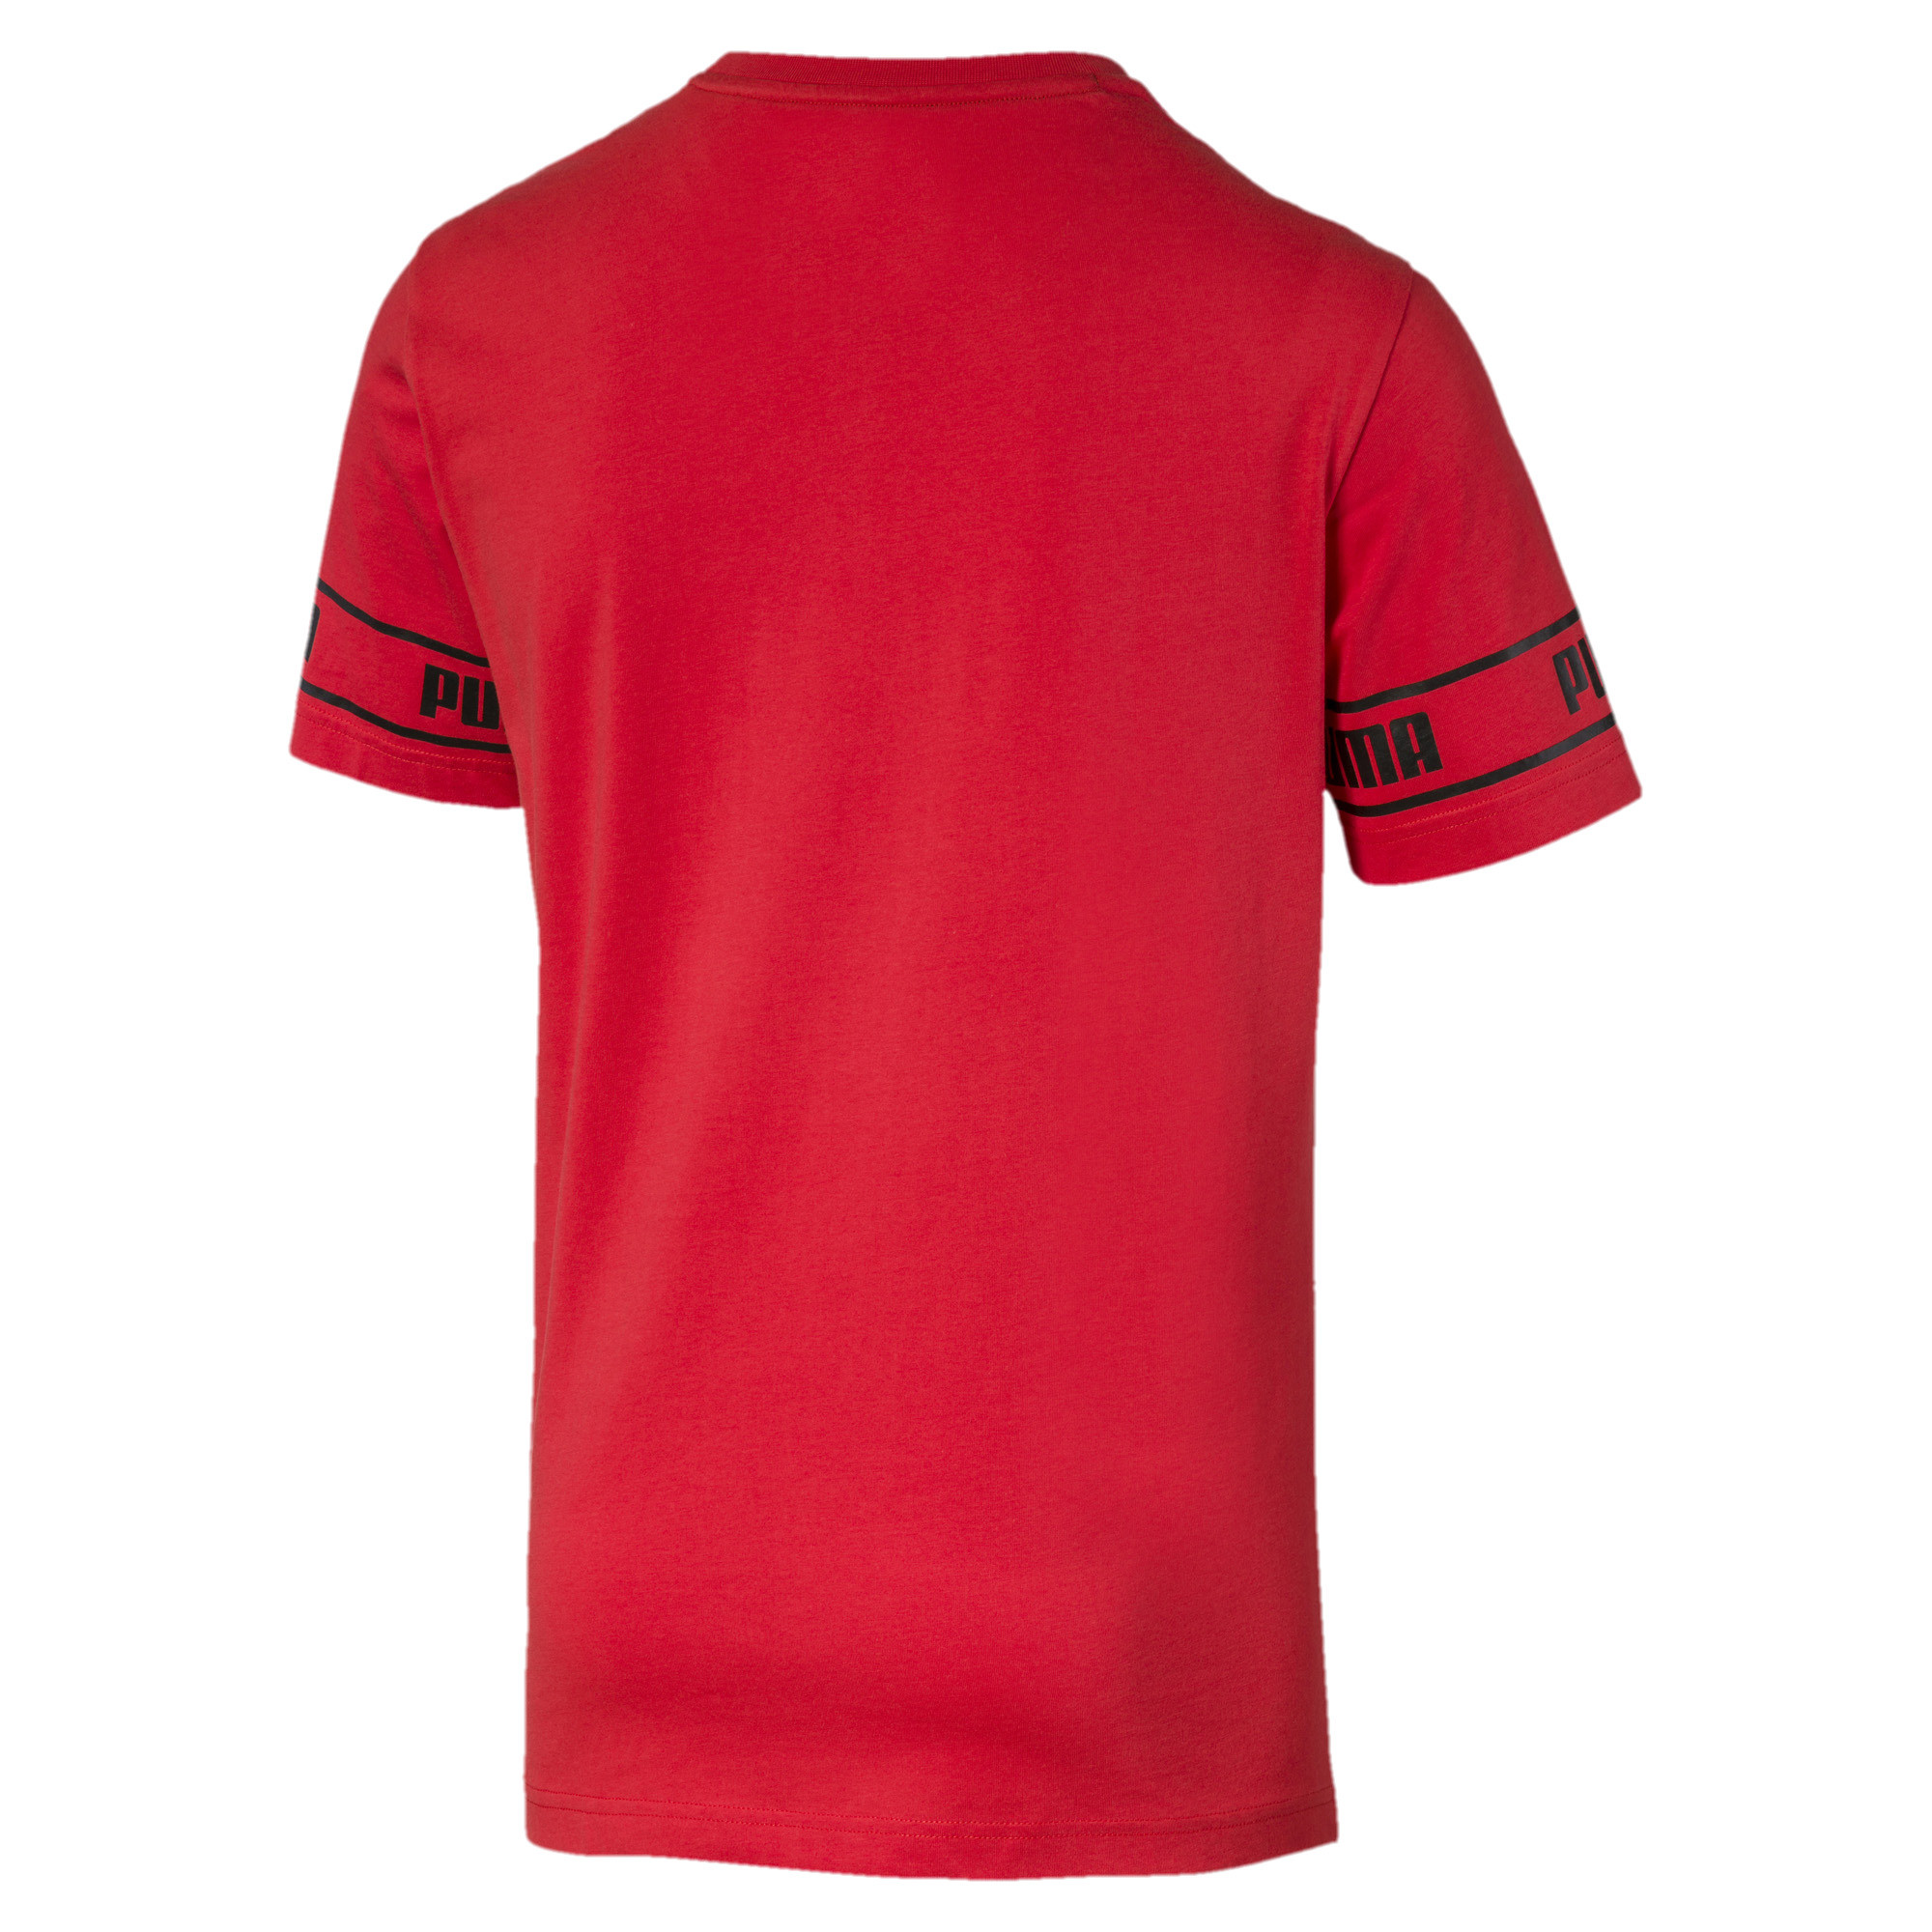 PUMA-Amplified-Men-039-s-Big-Logo-Tee-Men-Tee-Basics thumbnail 12